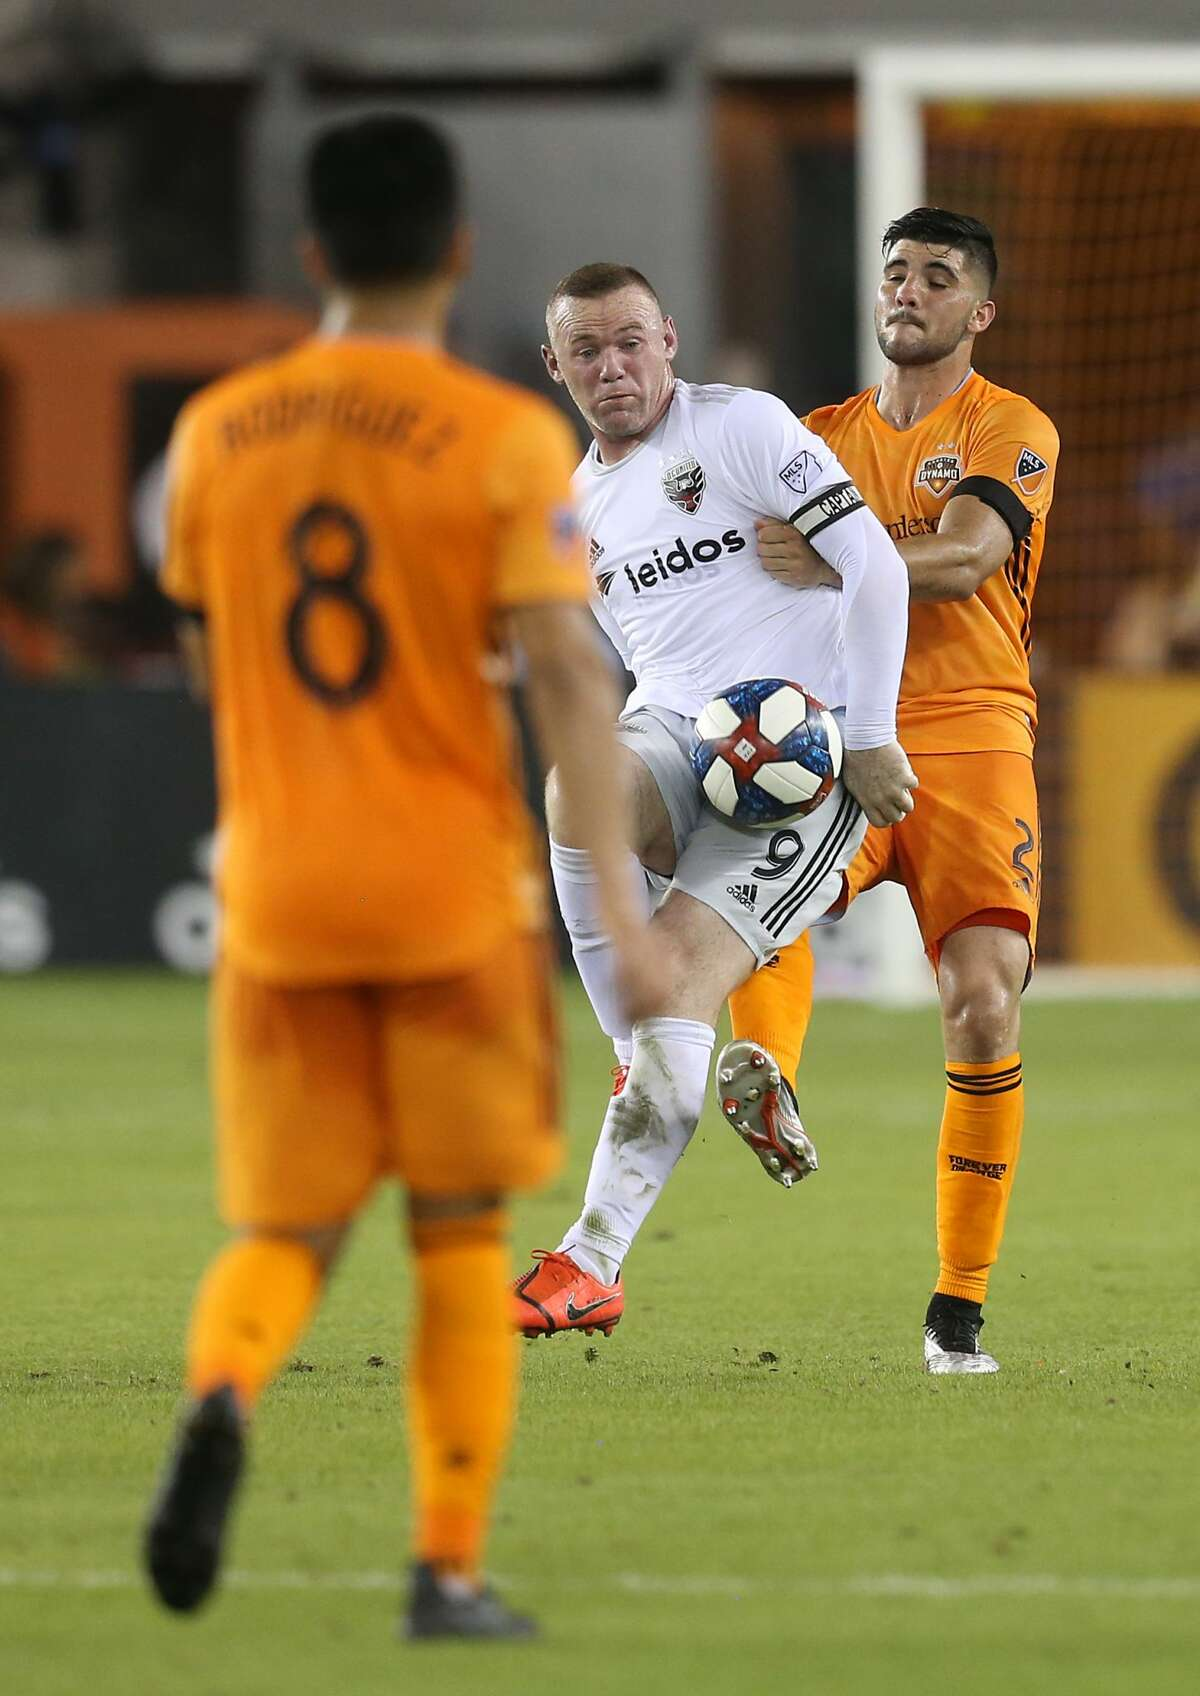 USA: TX: Houston: D.C. United forward Wayne Rooney (9) kicks the ball while being defended by Houston Dynamo defender Alejandro Fuenmayor (2) in the first half on May 18, 2019 at BBVA Compass Stadium in Houston, TX.